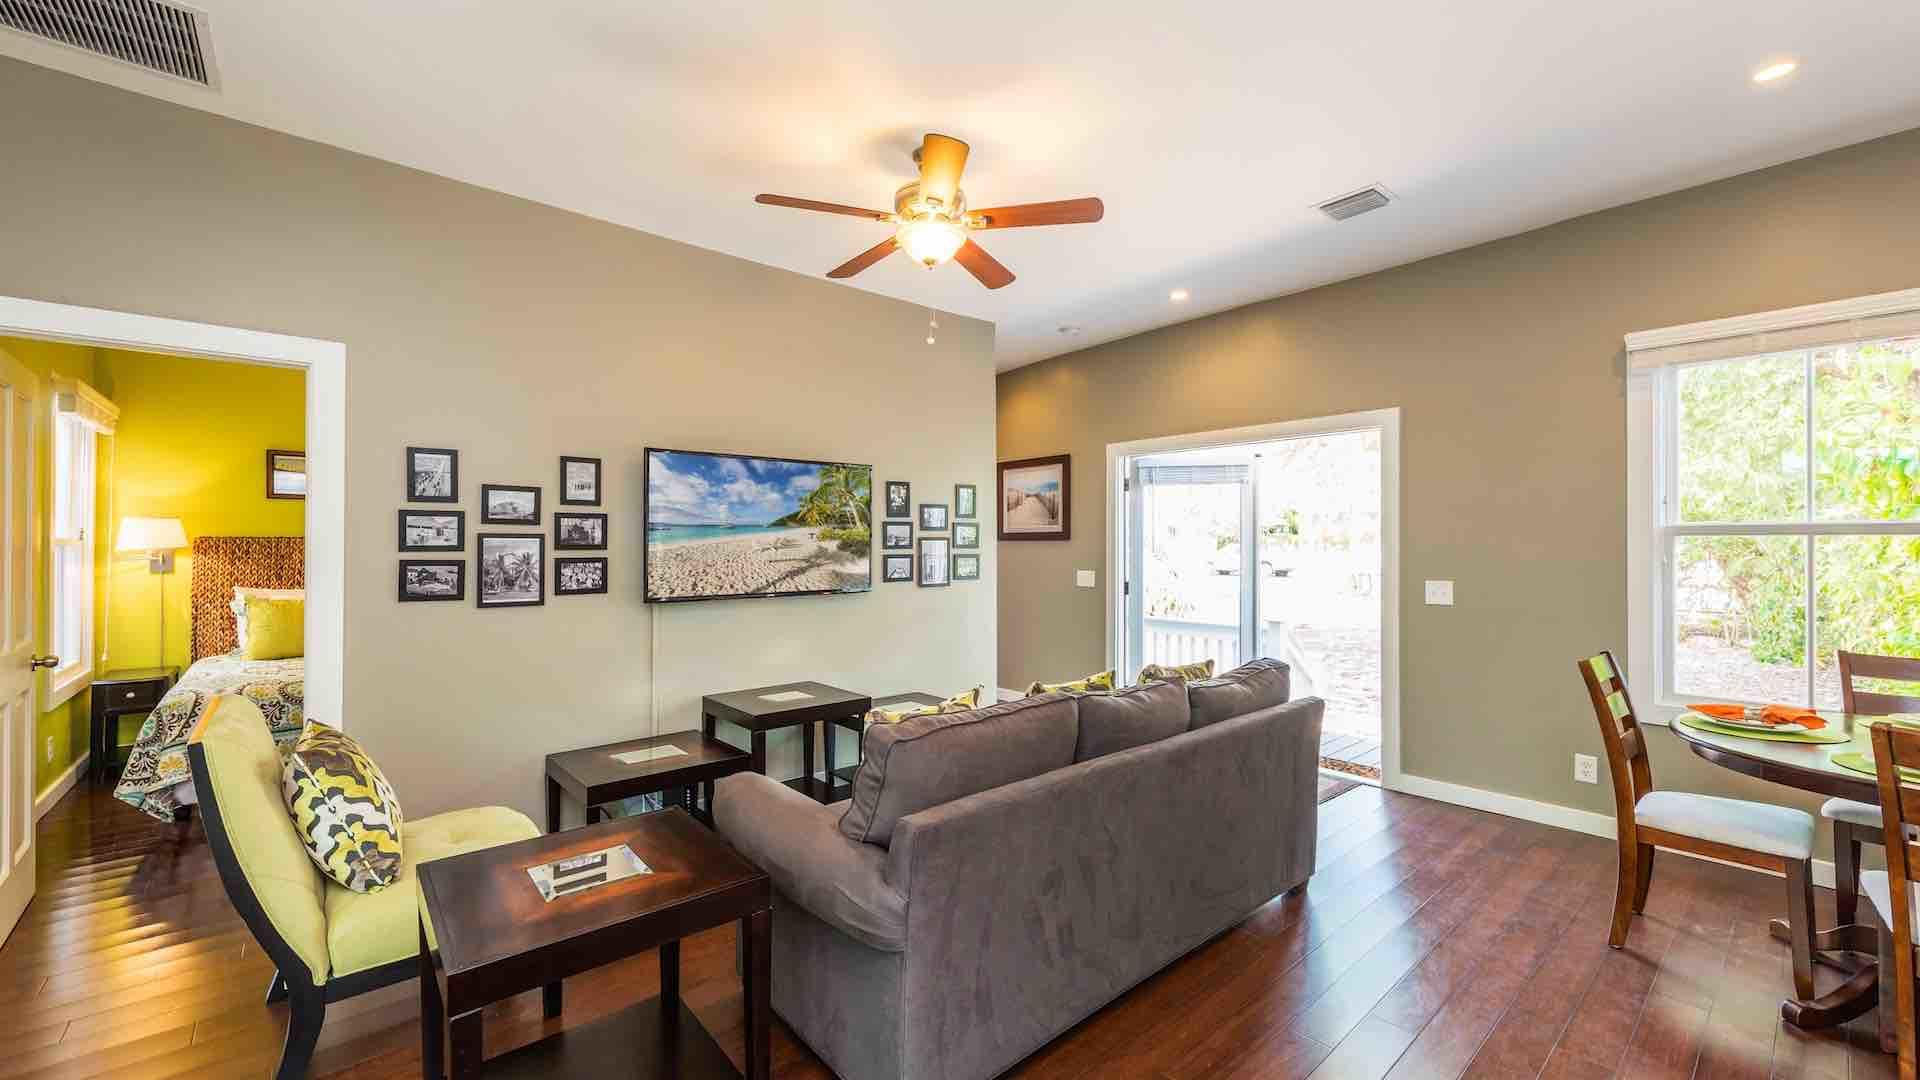 You'll enter the home through the side French Doors into the living room...